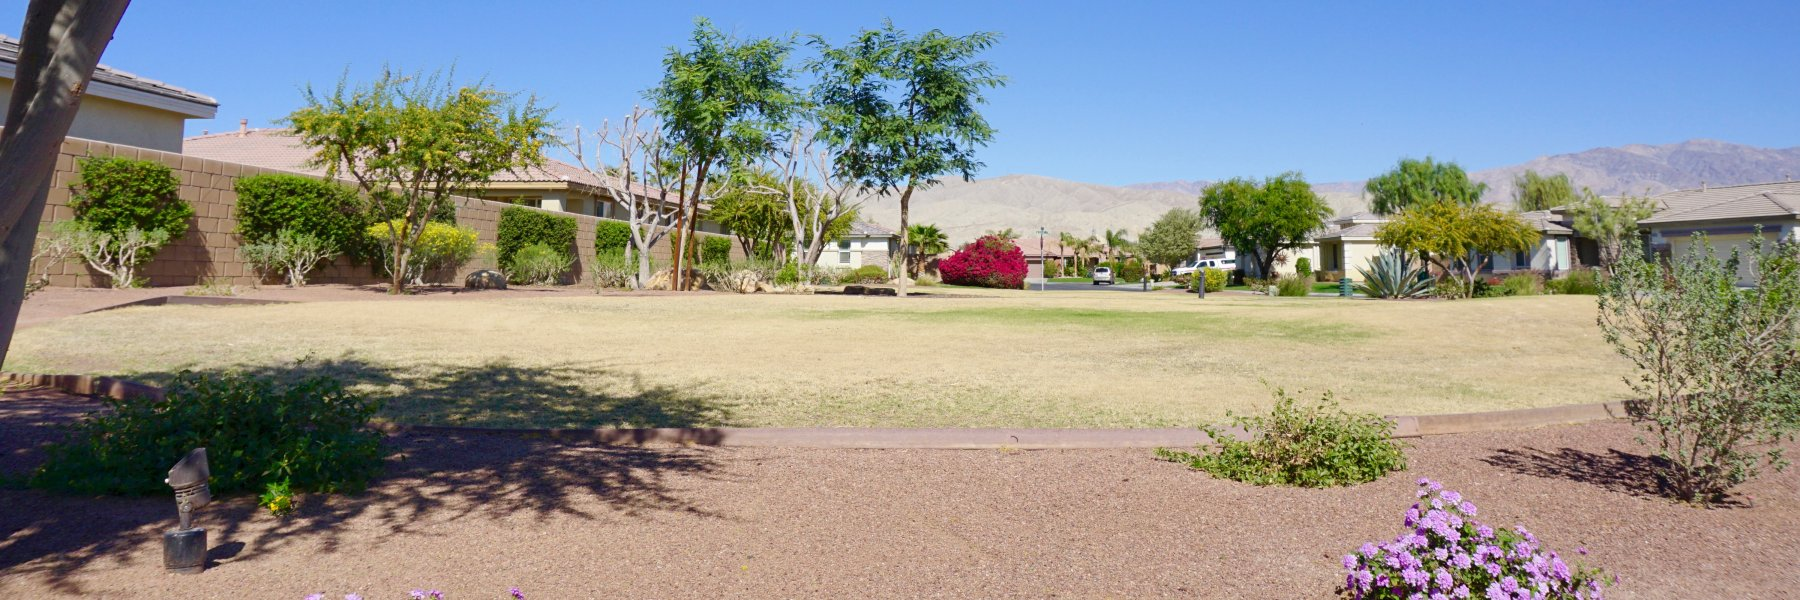 Generations is a community of homes in Indio California